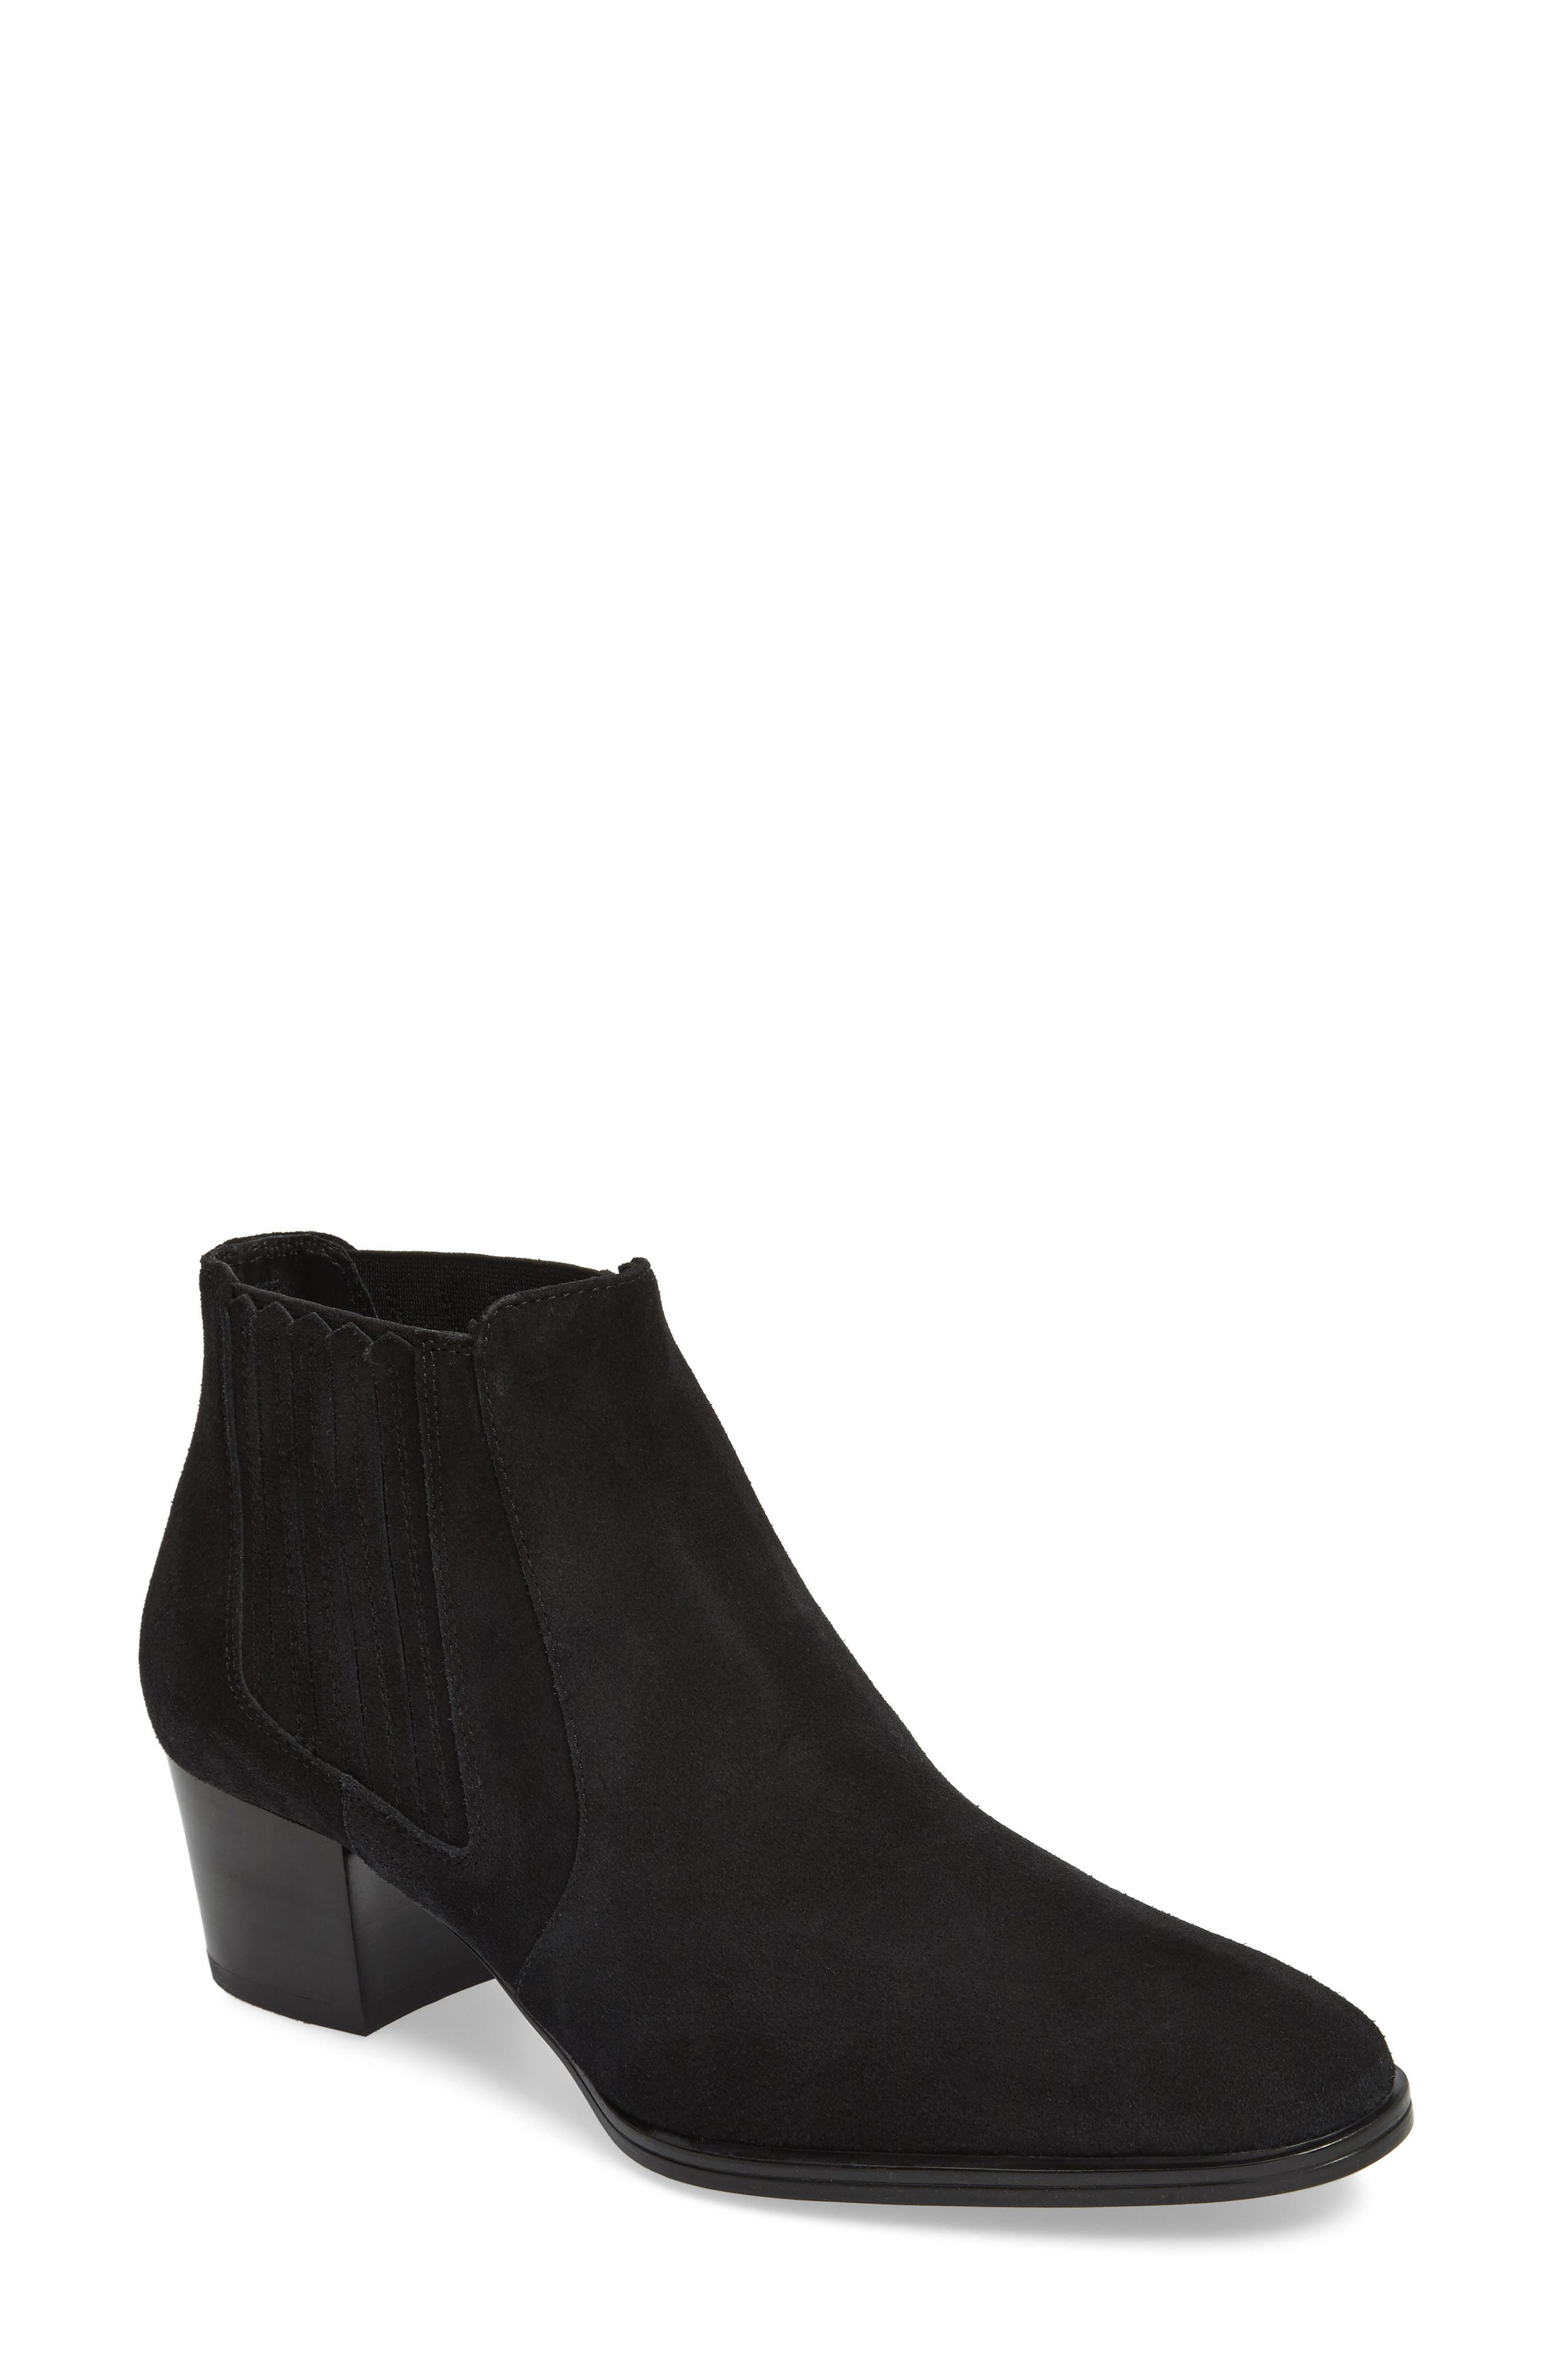 Alternate Image 1 Selected - Tods Western Block Heel Chelsea Bootie (Women)